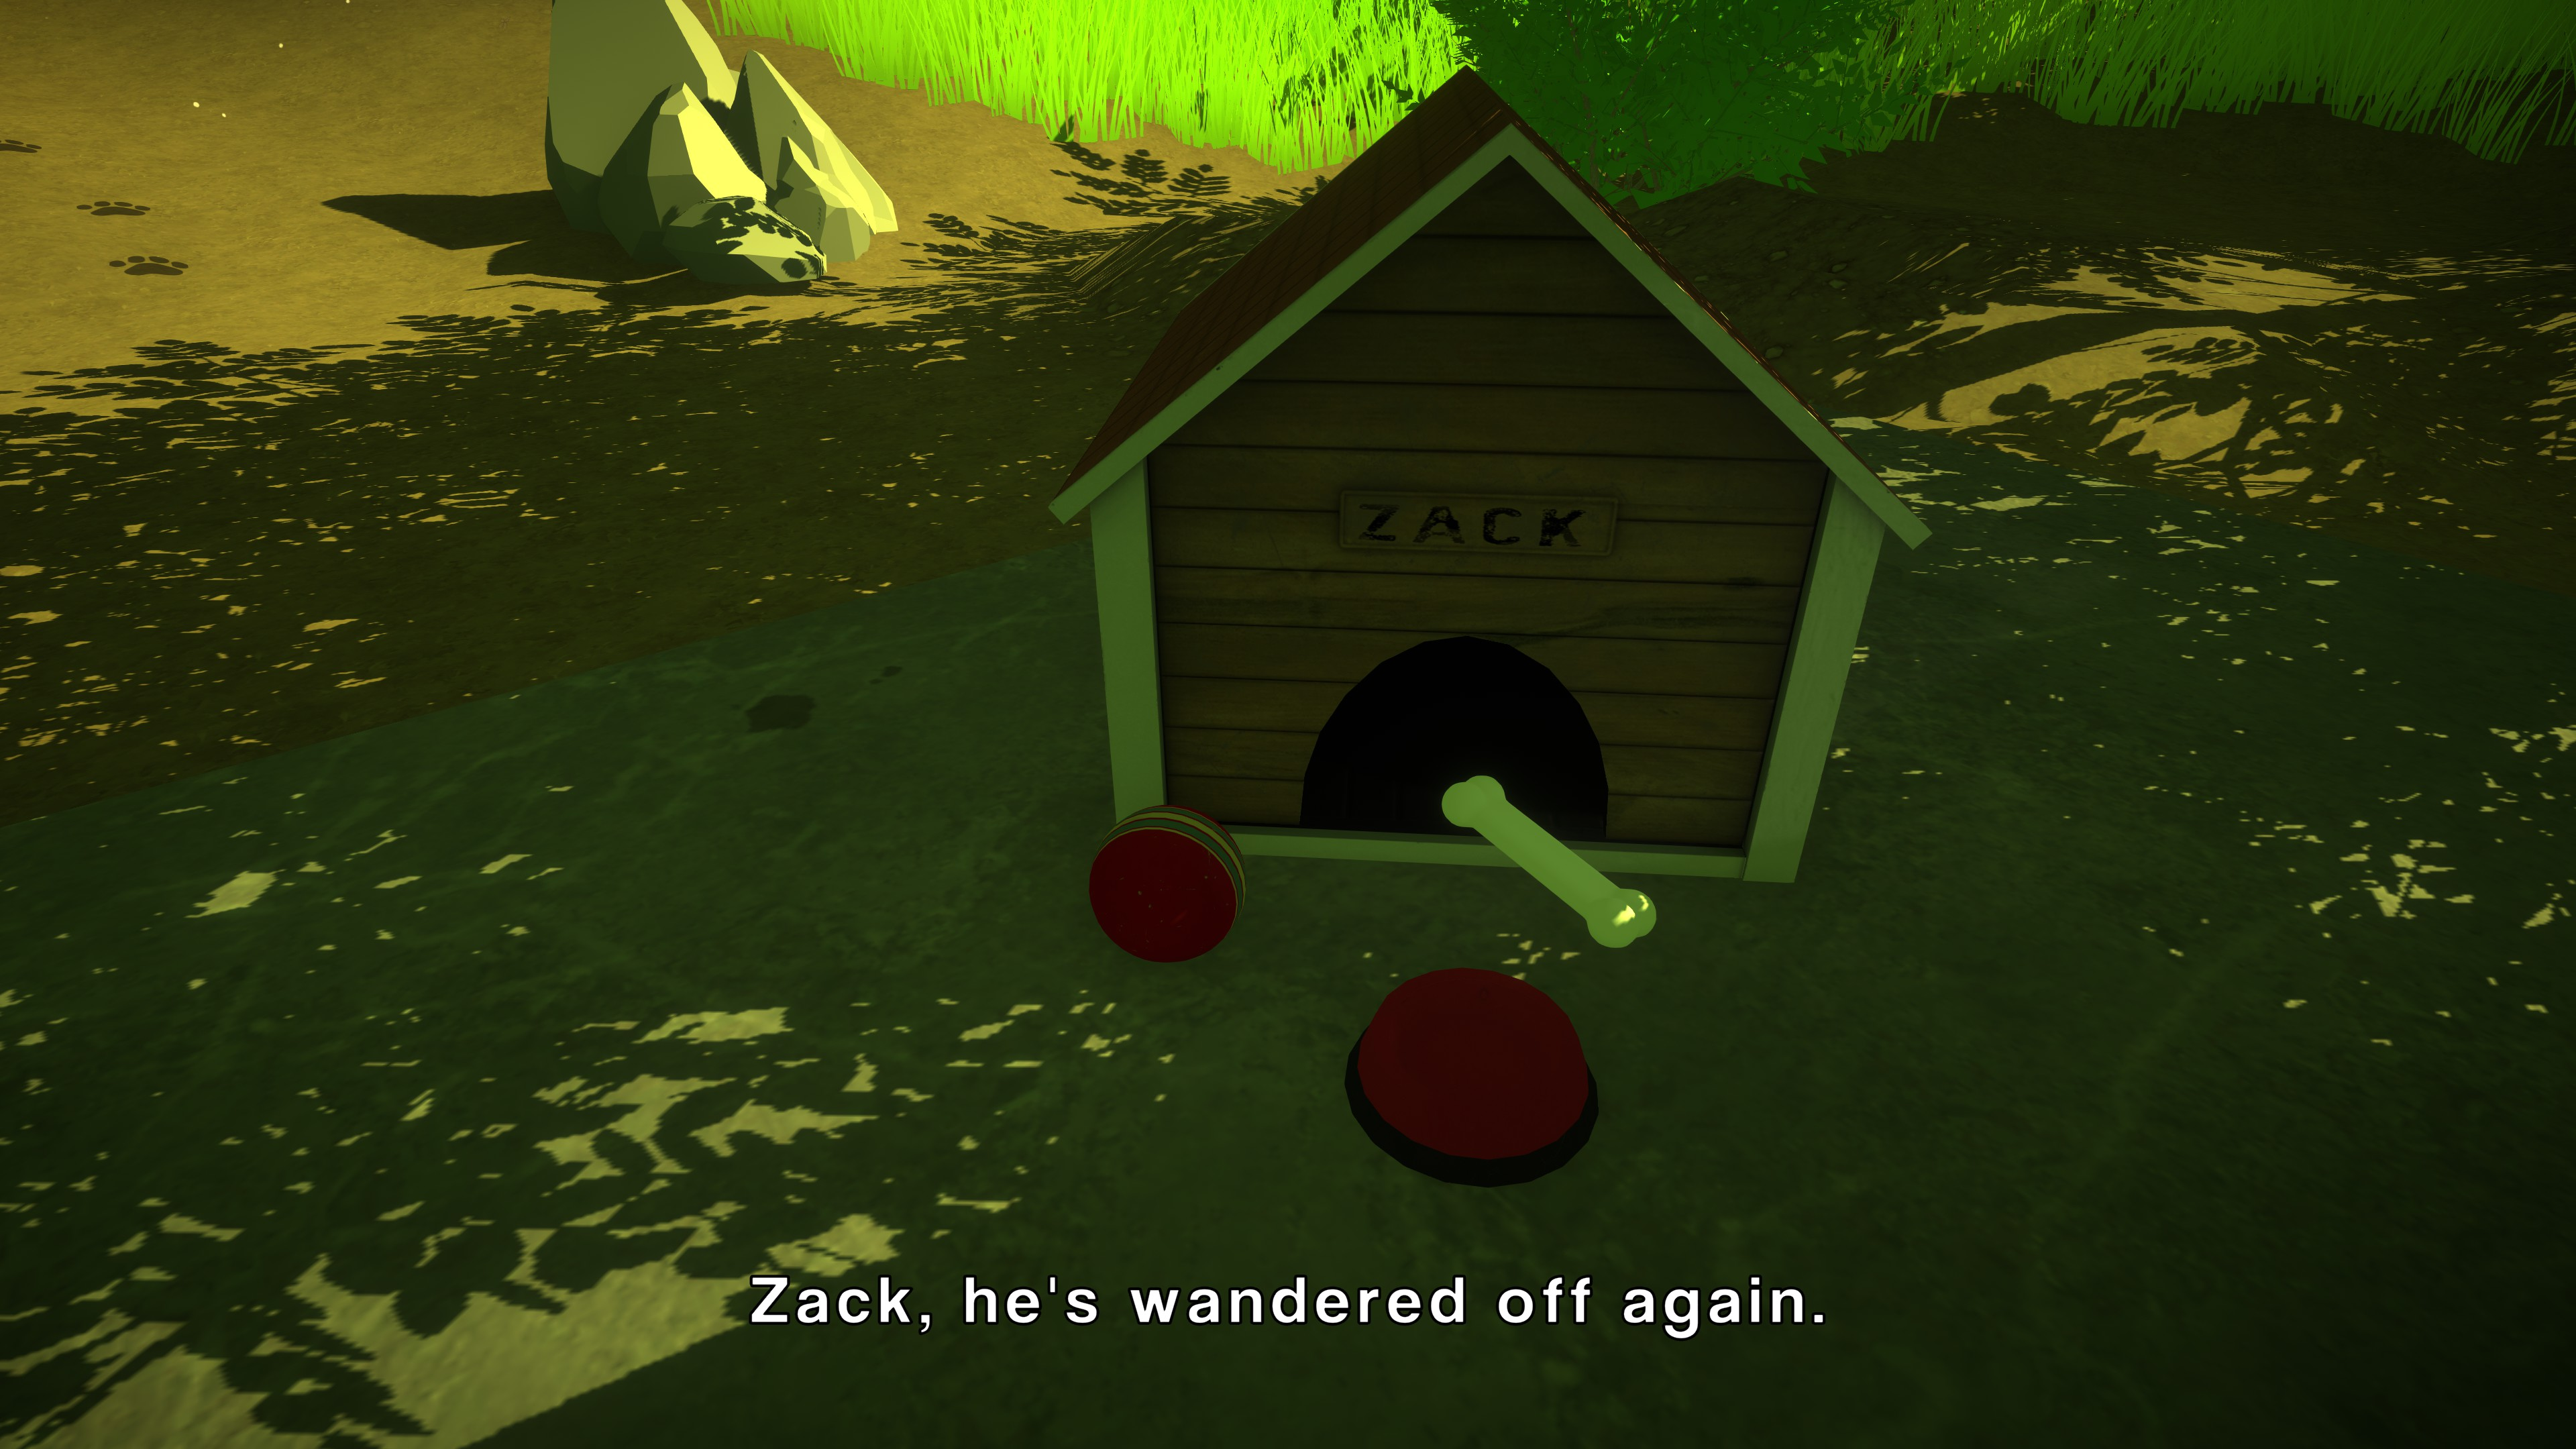 The First Friend. View of an empty doghouse with subtitles saying 'Zack, he's wandered off again'